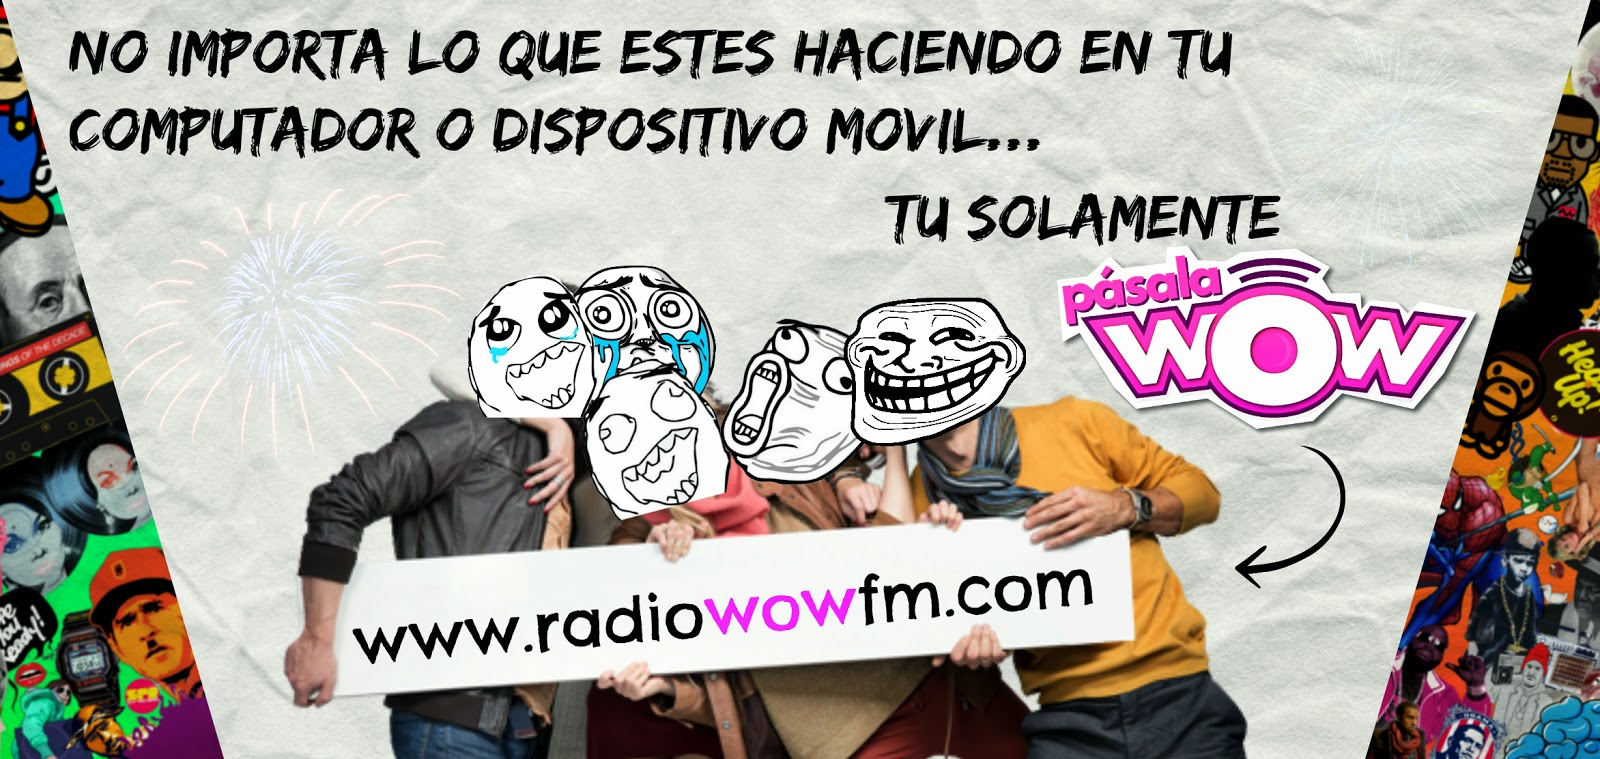 #AlAire